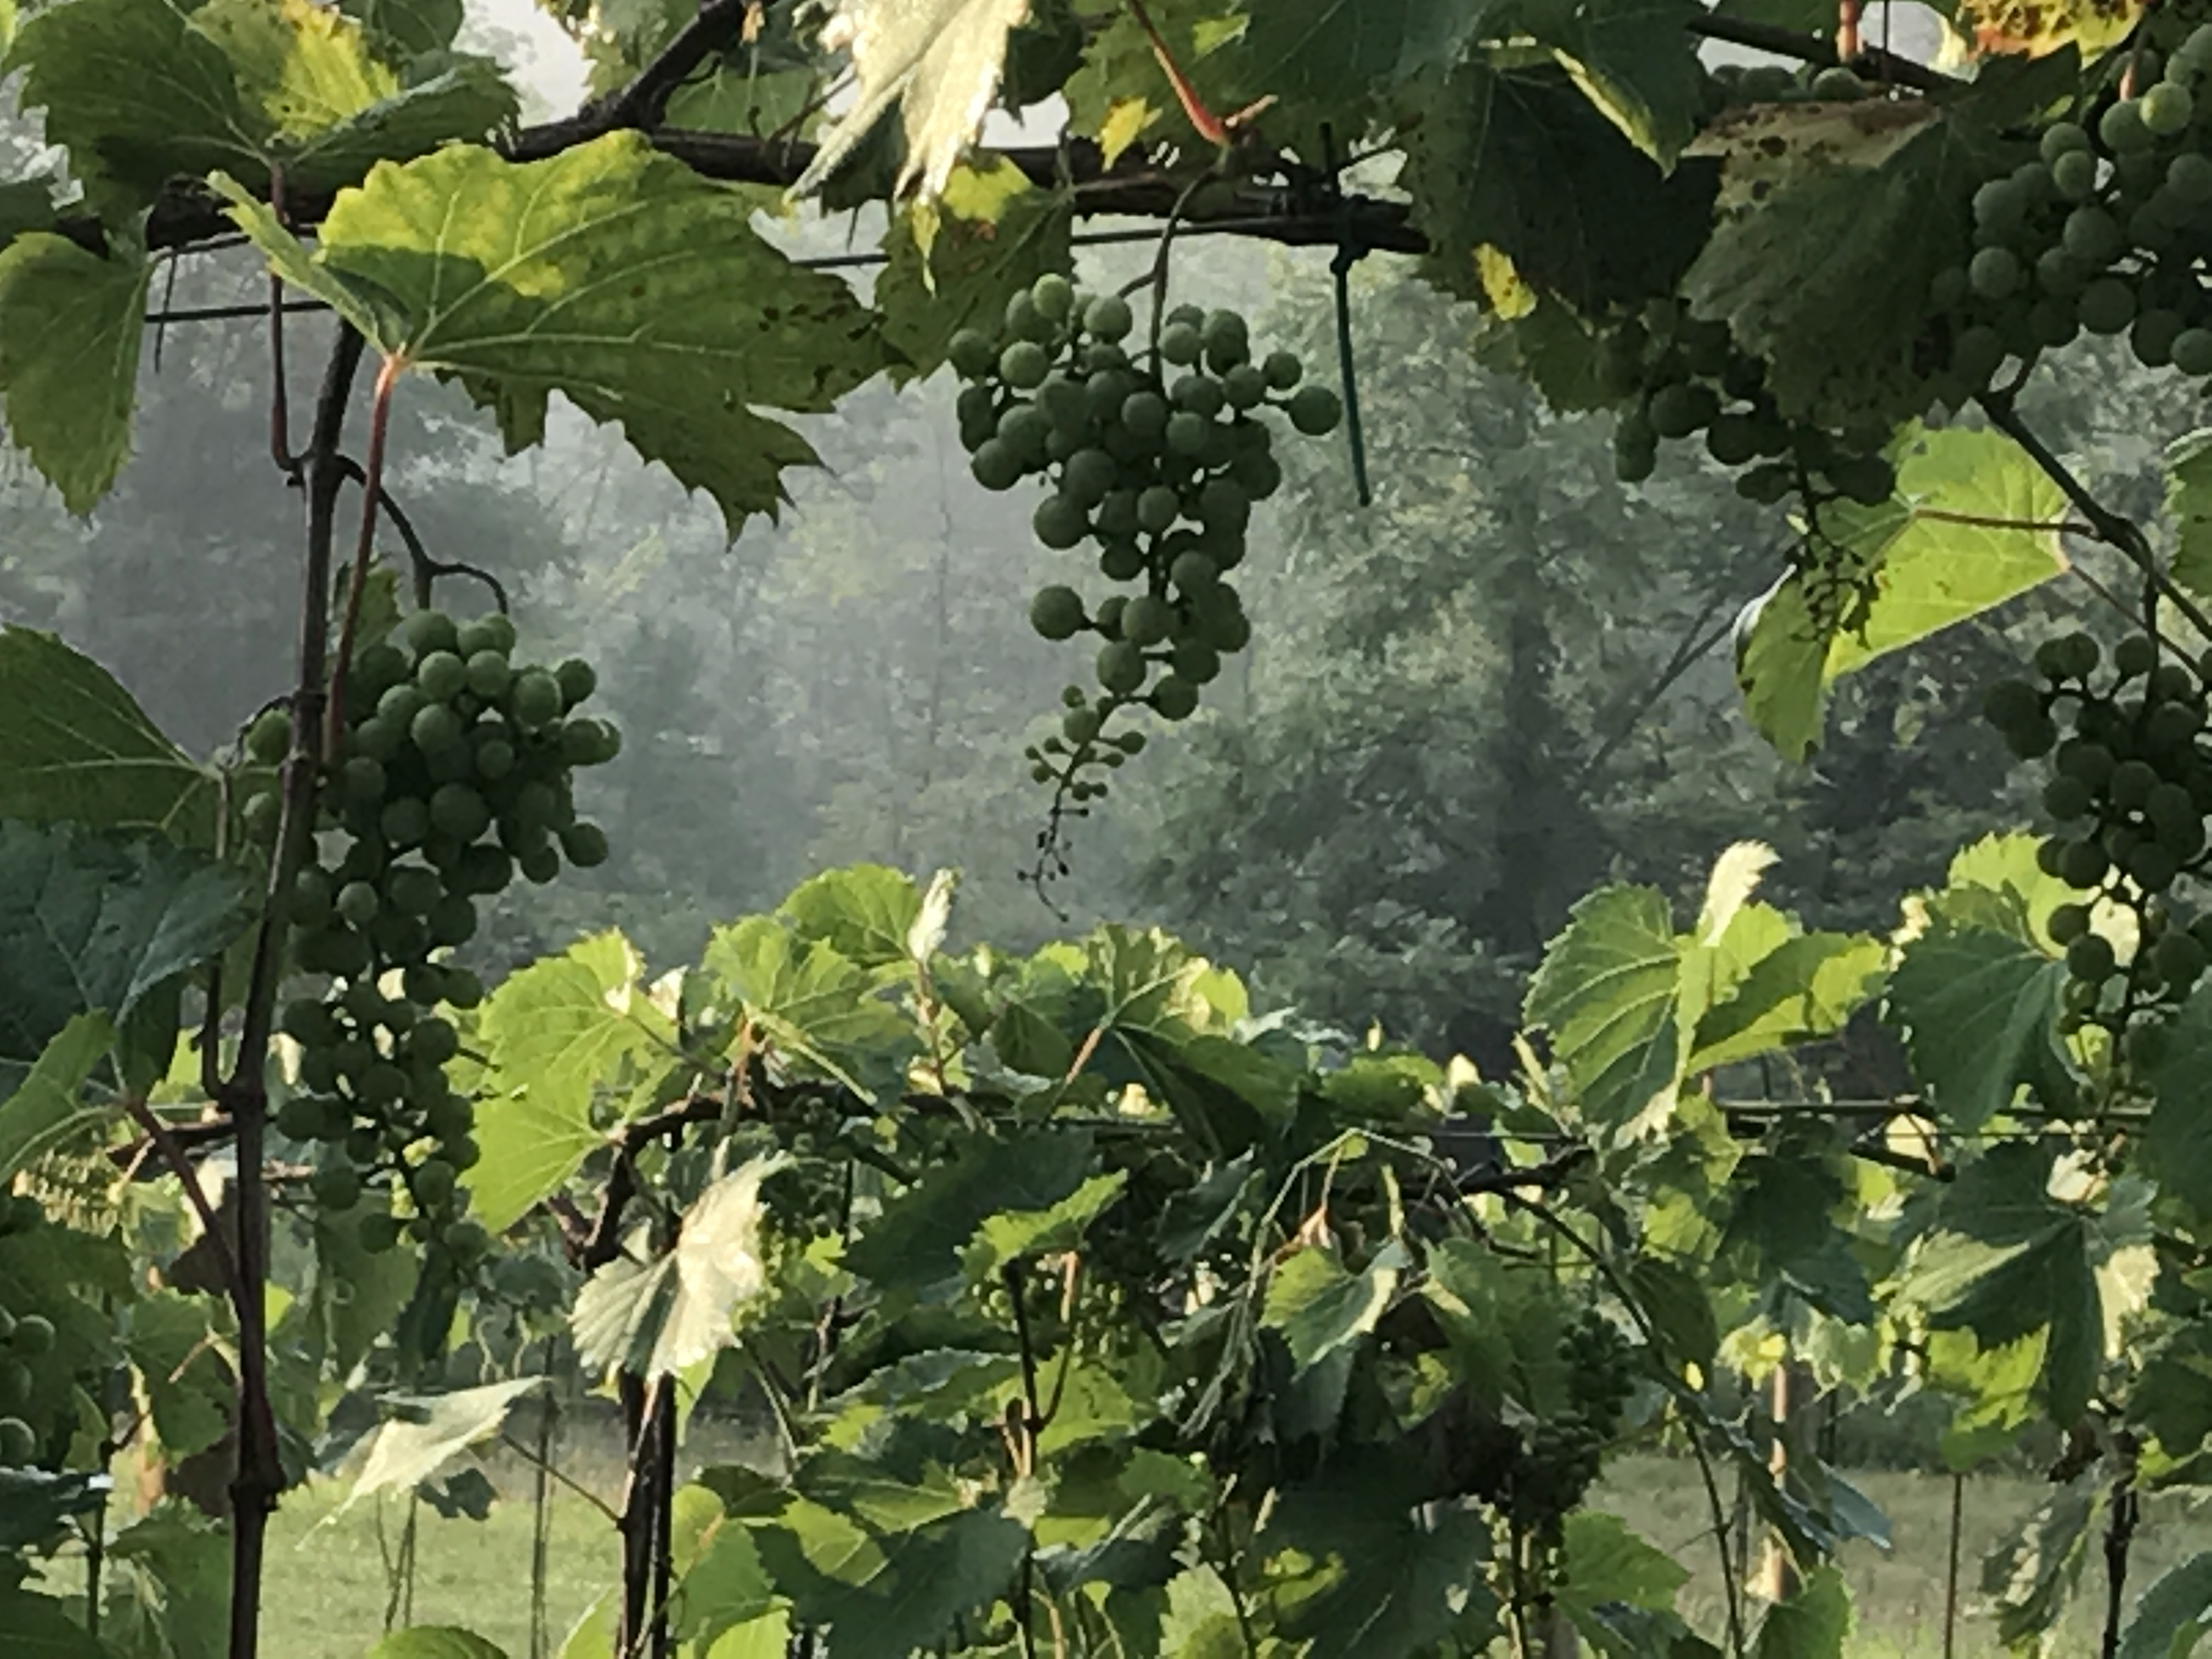 EAGLES REST CELLARS vineyard, winery and Christmas tree farm in Cherry Valley, Stroudsburg, Pennsylvania